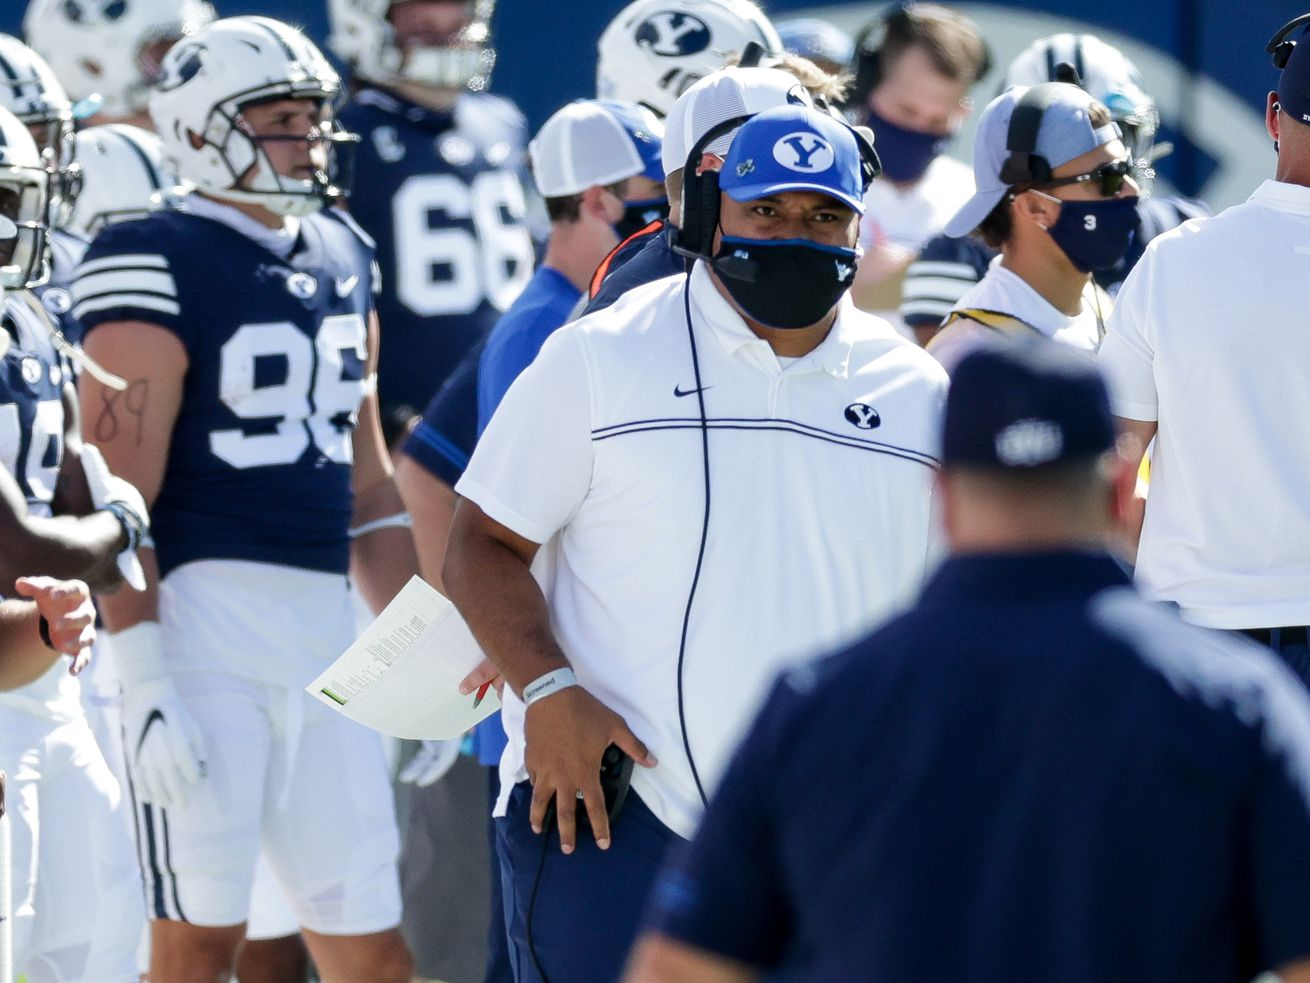 Brigham Young Cougars head coach Kalani Sitake works the sideline during the game against the UTSA Roadrunners at LaVell Edwards Stadium in Provo on Saturday, Oct. 10, 2020.